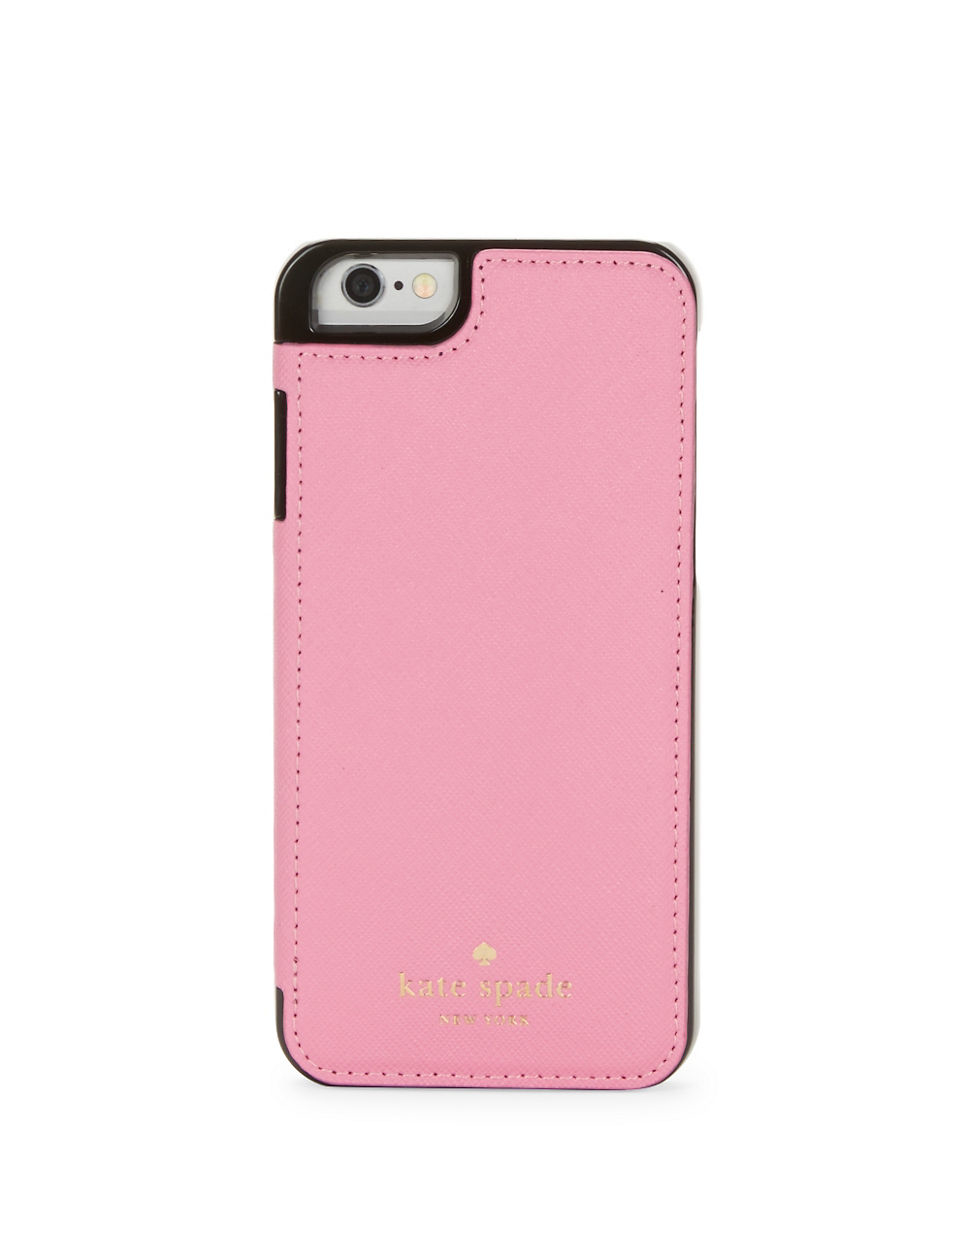 Kate Spade Leather Folio Iphone 6 Case In Pink Lyst